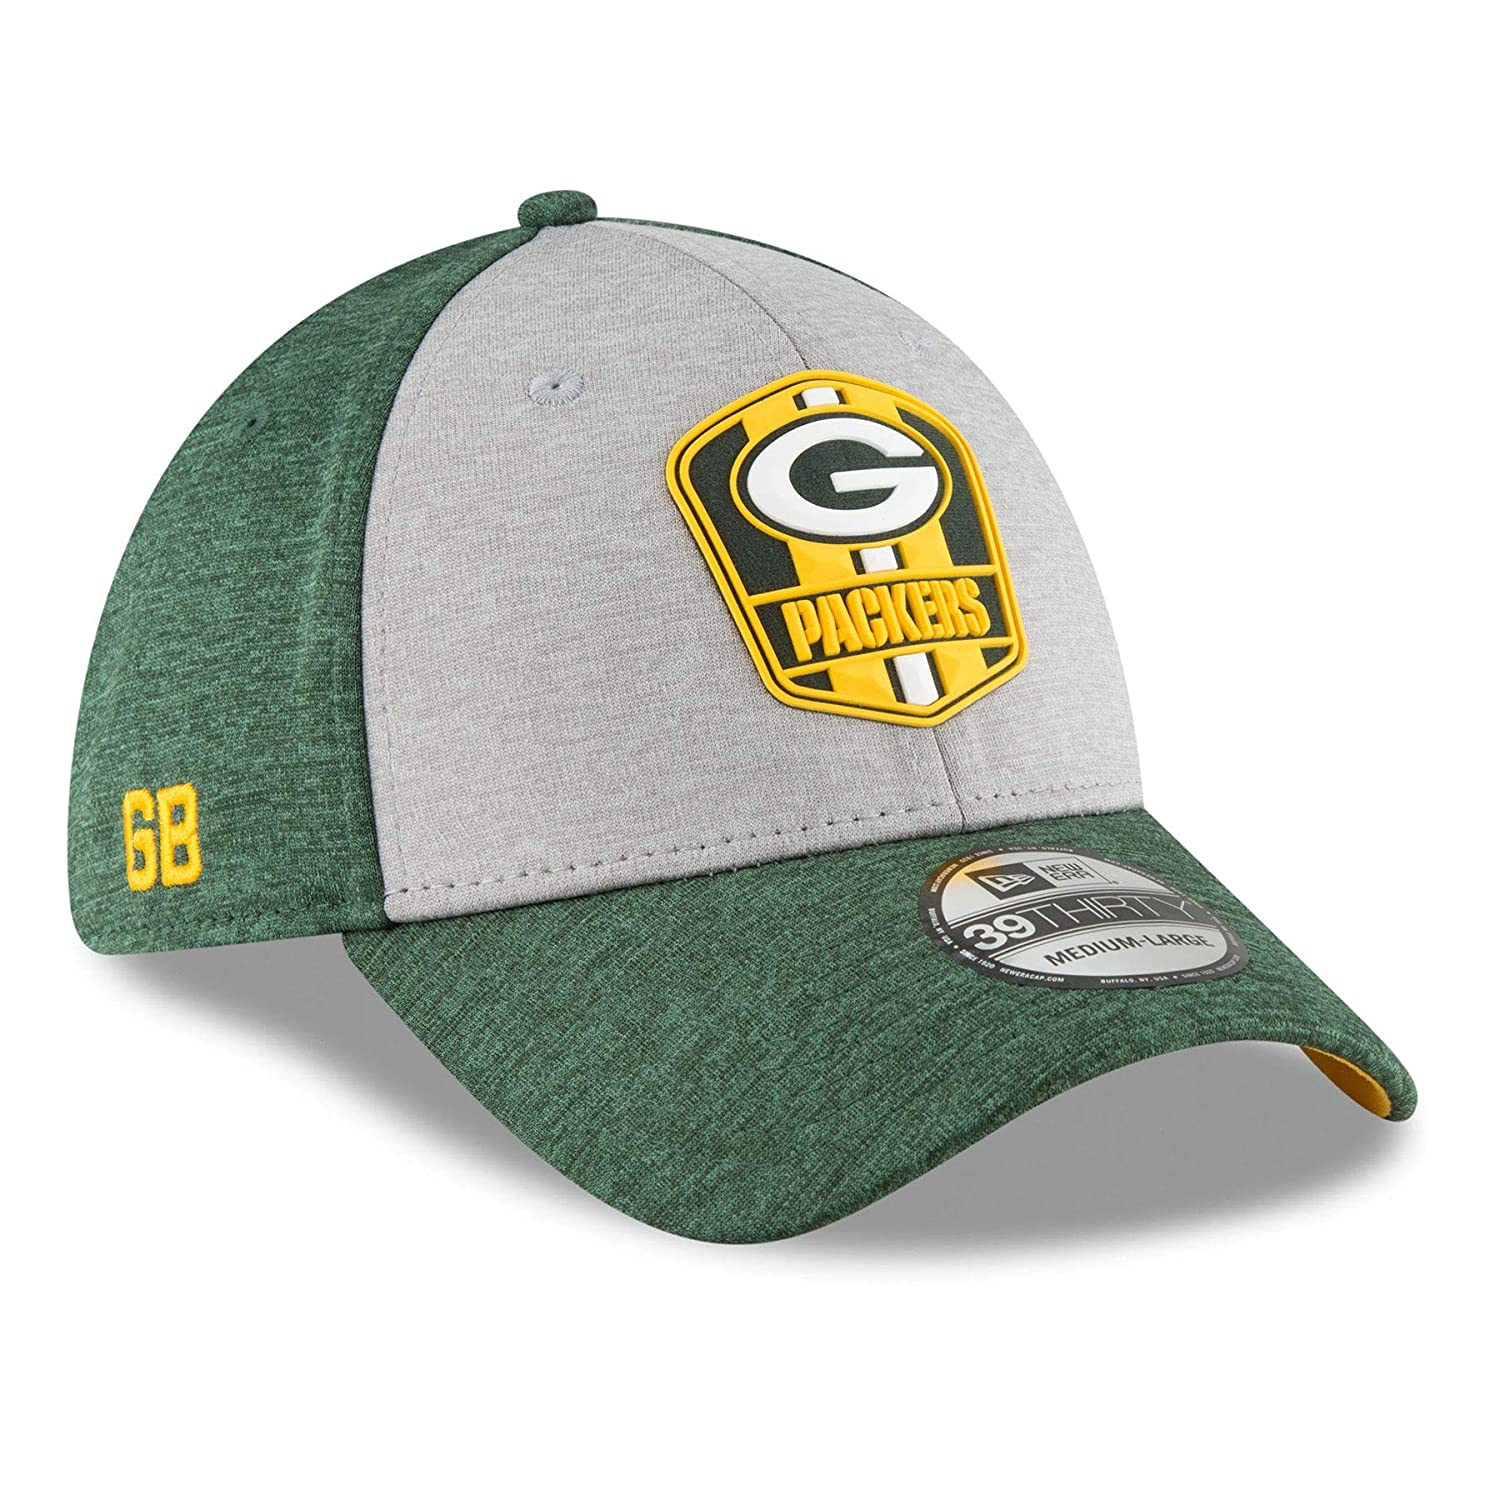 New Era 2018 39Thirty NFL Green Bay Packers Sideline Away Hat Cap 11763340 at Amazon Mens Clothing store: